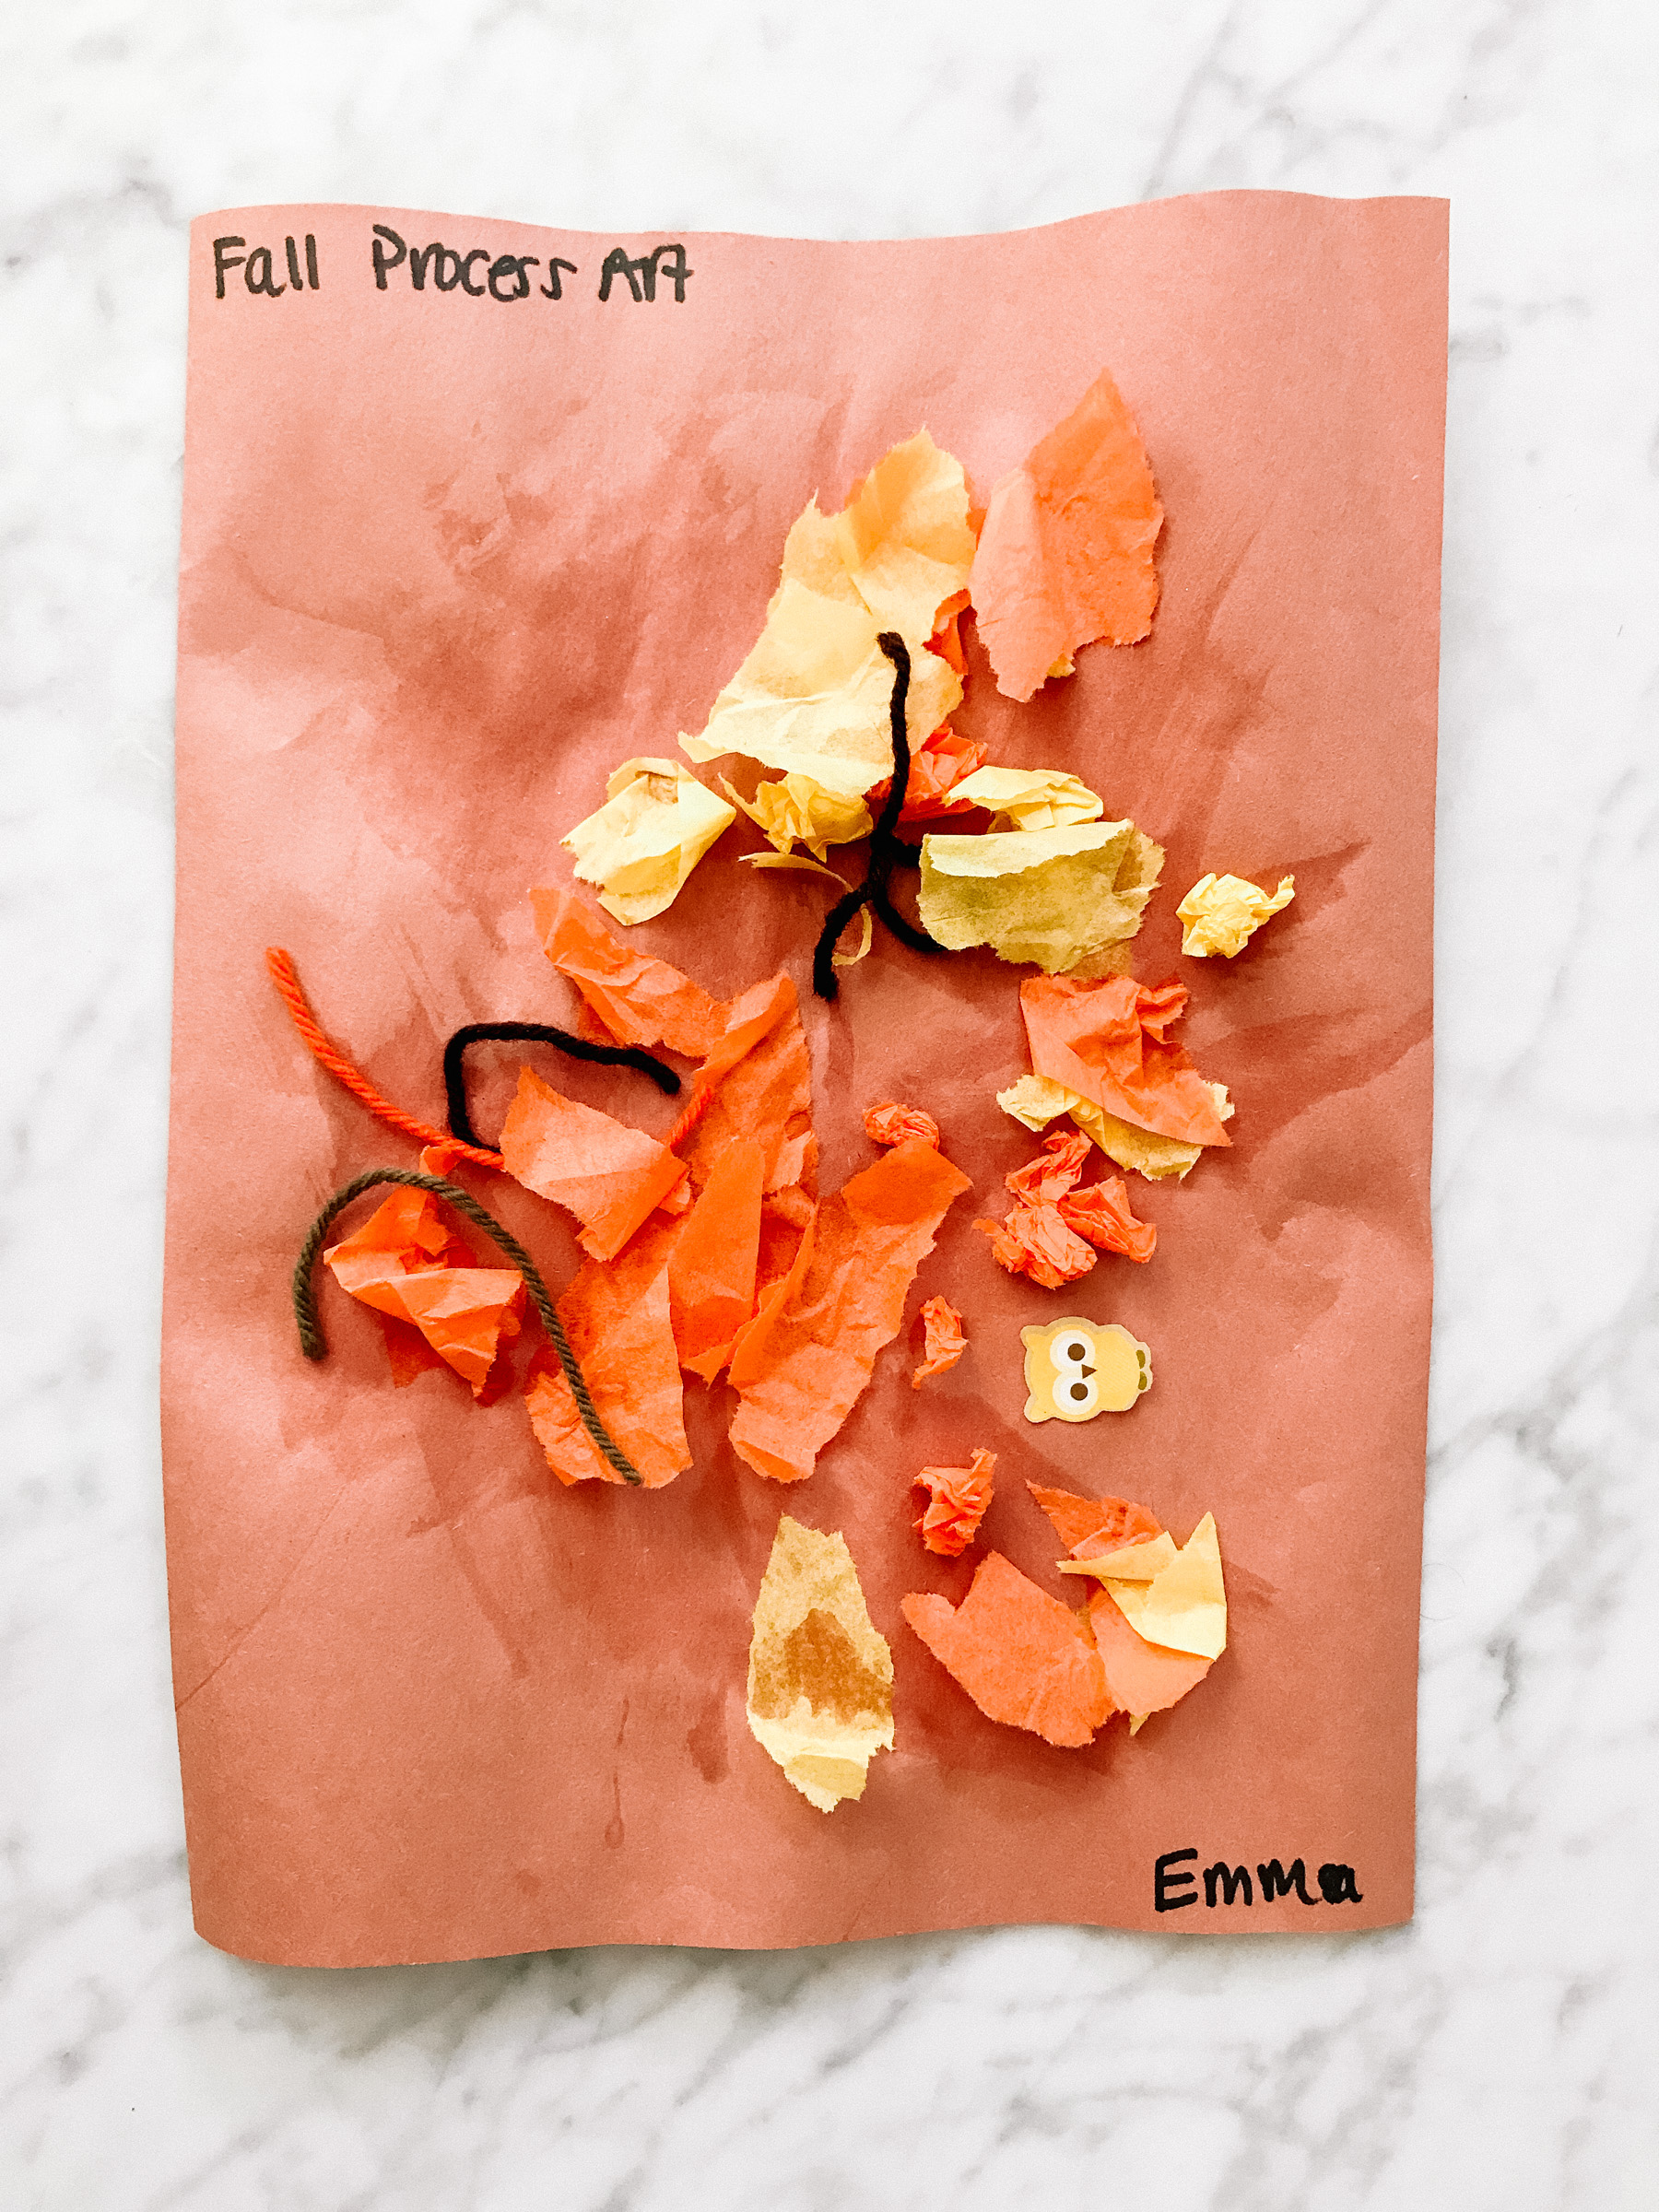 fall art - emma